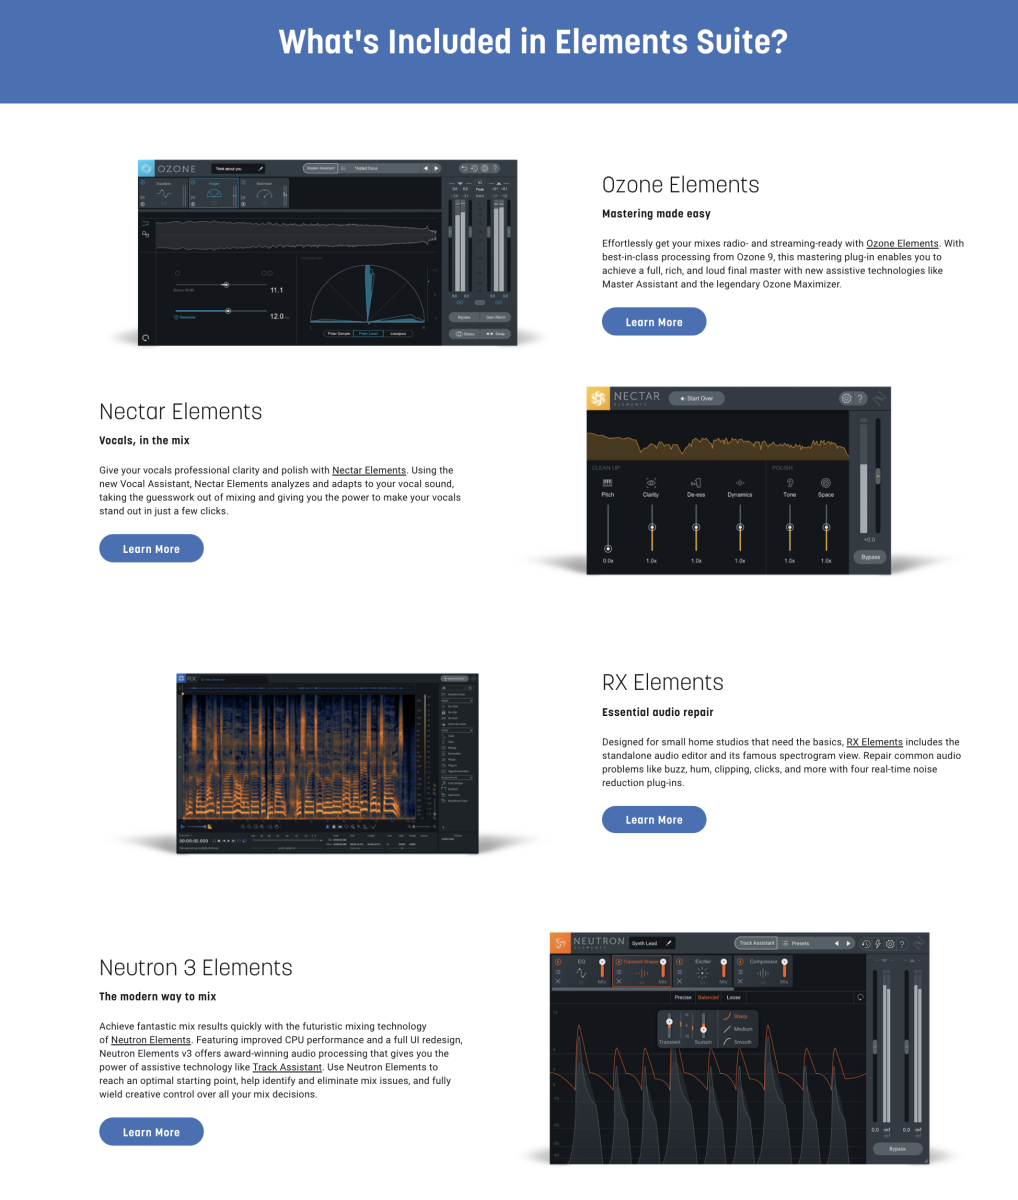 More about iZotope's Elements Suite Here